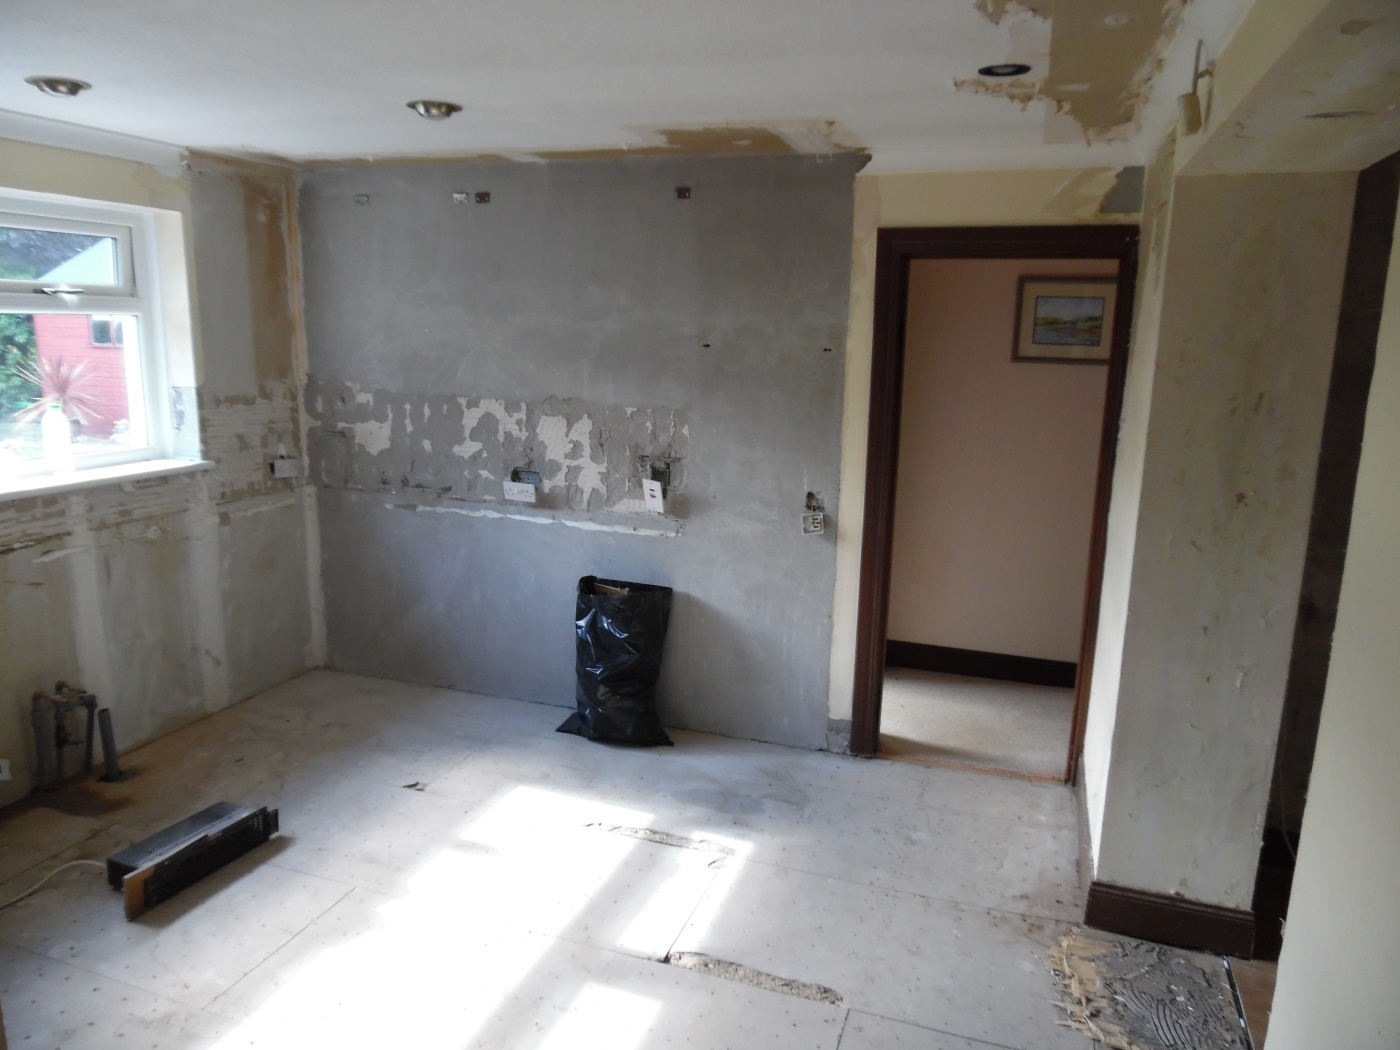 Stripping out the kitchen